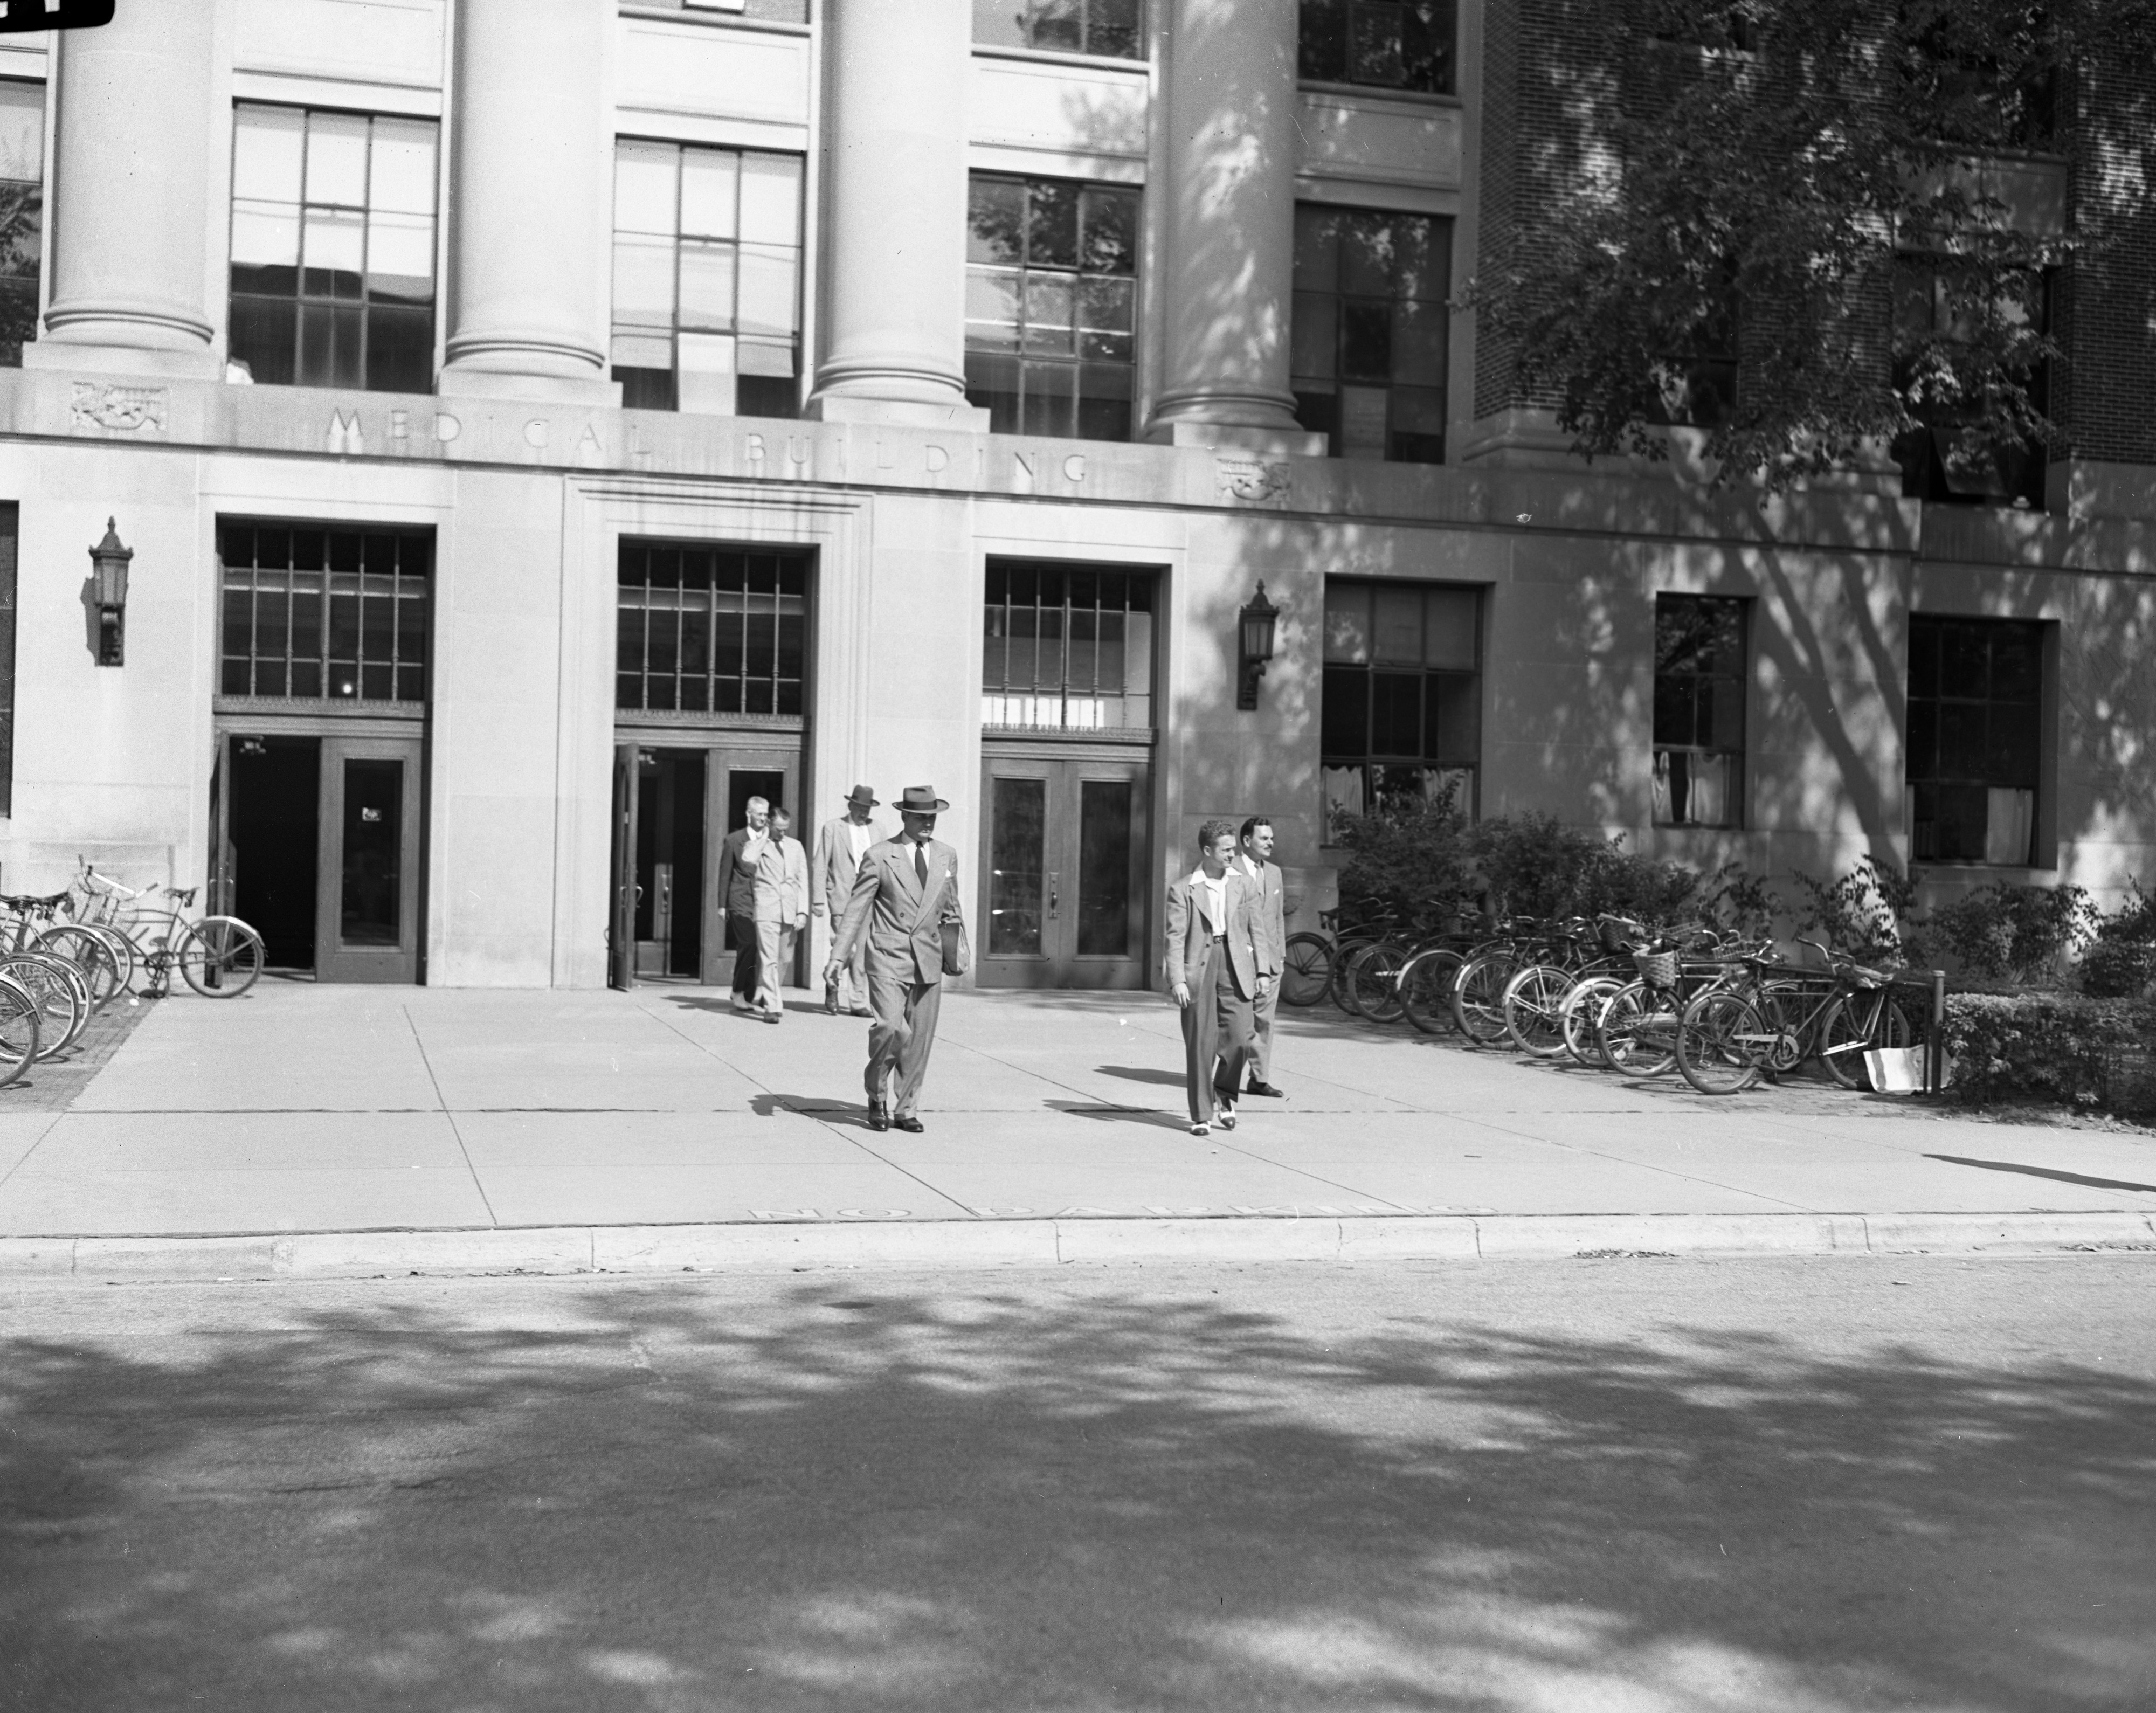 Gov. Thomas E. Dewey's Tour of University of Michigan Includes Medical Building, July 1947 image